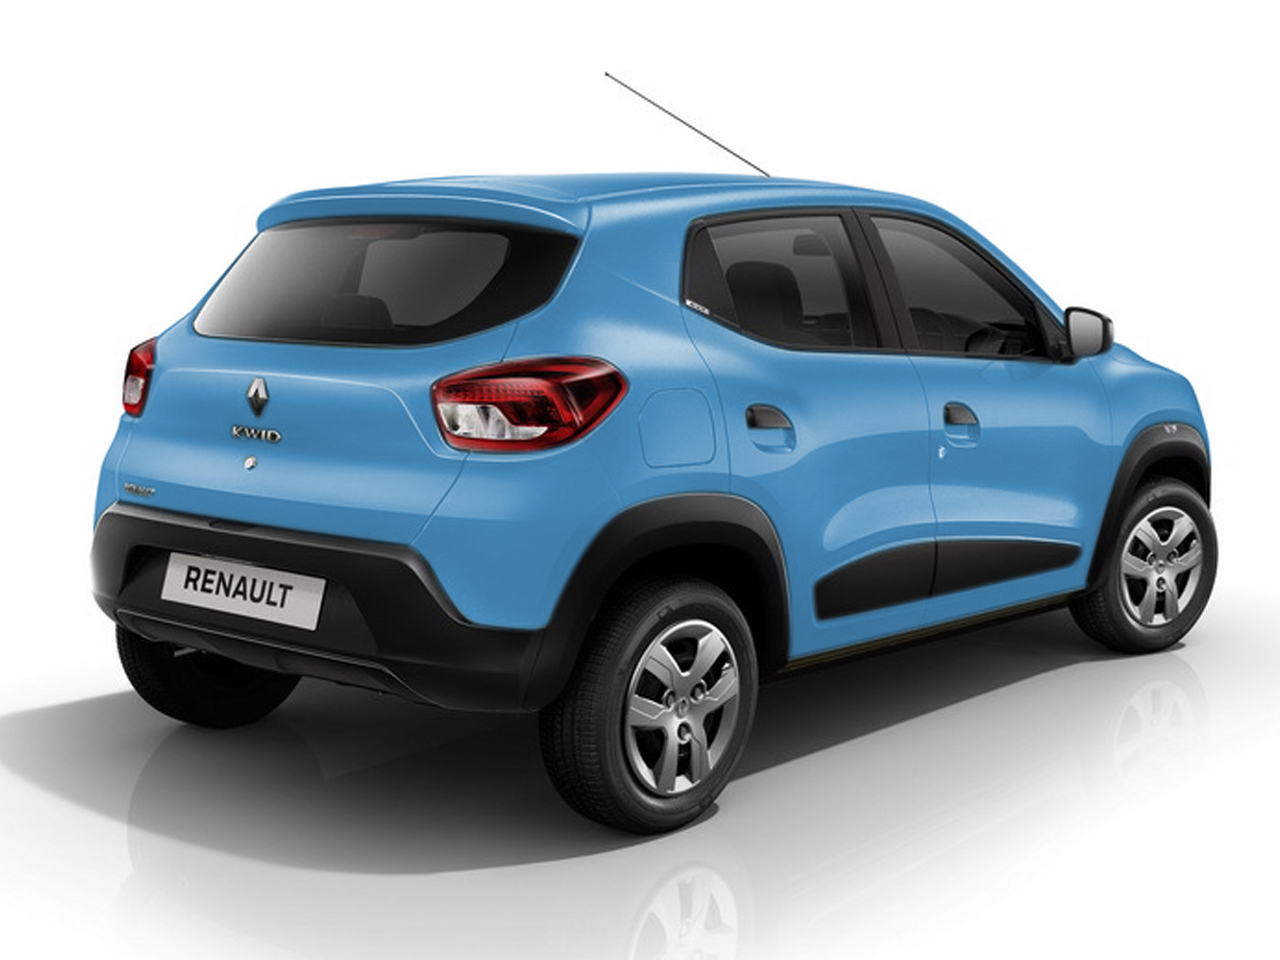 renault kwid la citadine low cost sera produite au br sil l 39 argus. Black Bedroom Furniture Sets. Home Design Ideas